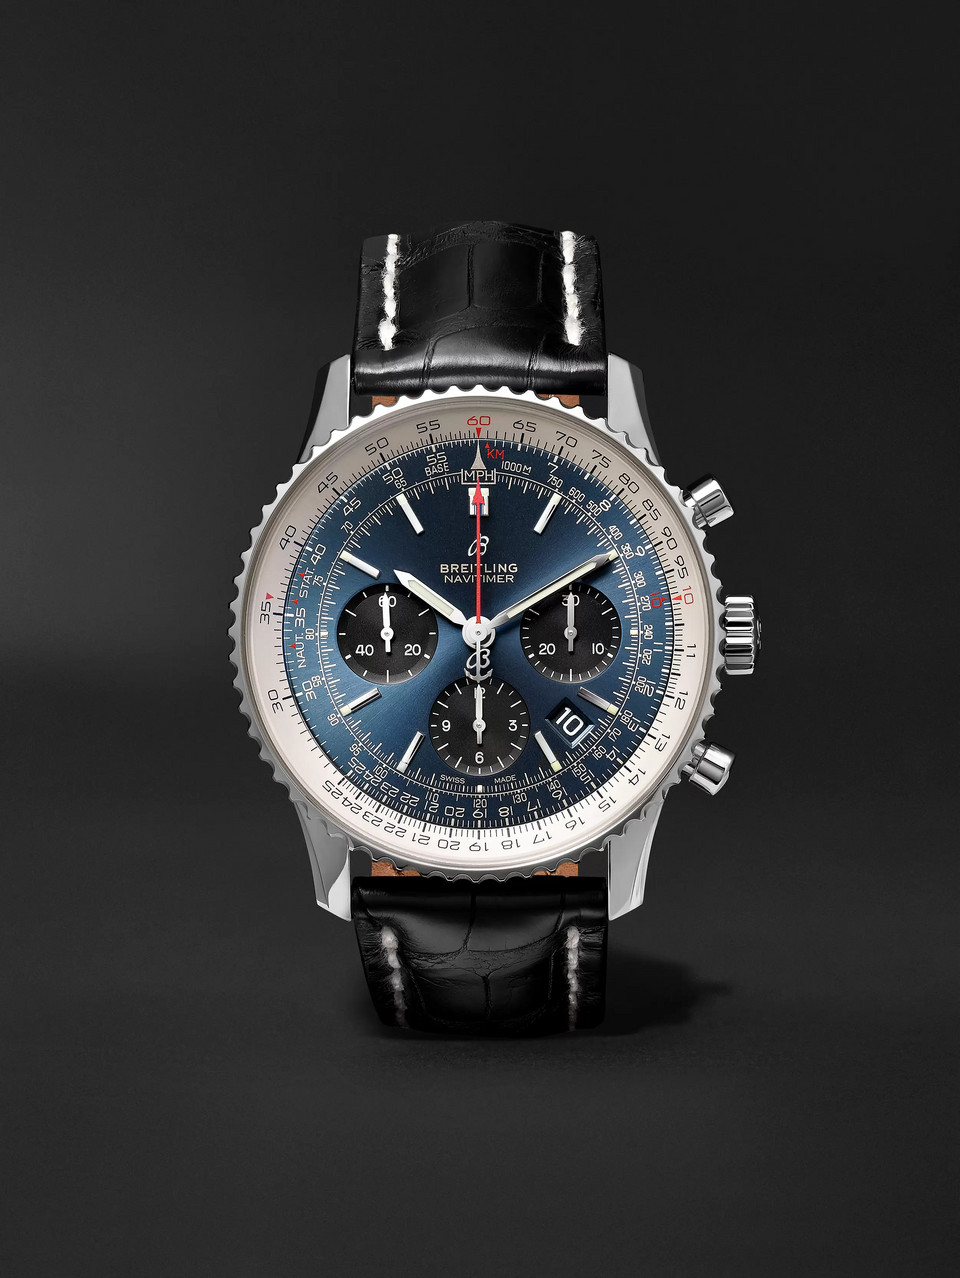 Breitling Navitimer 8 B01 Chronometer 43mm Stainless Steel and Alligator Watch